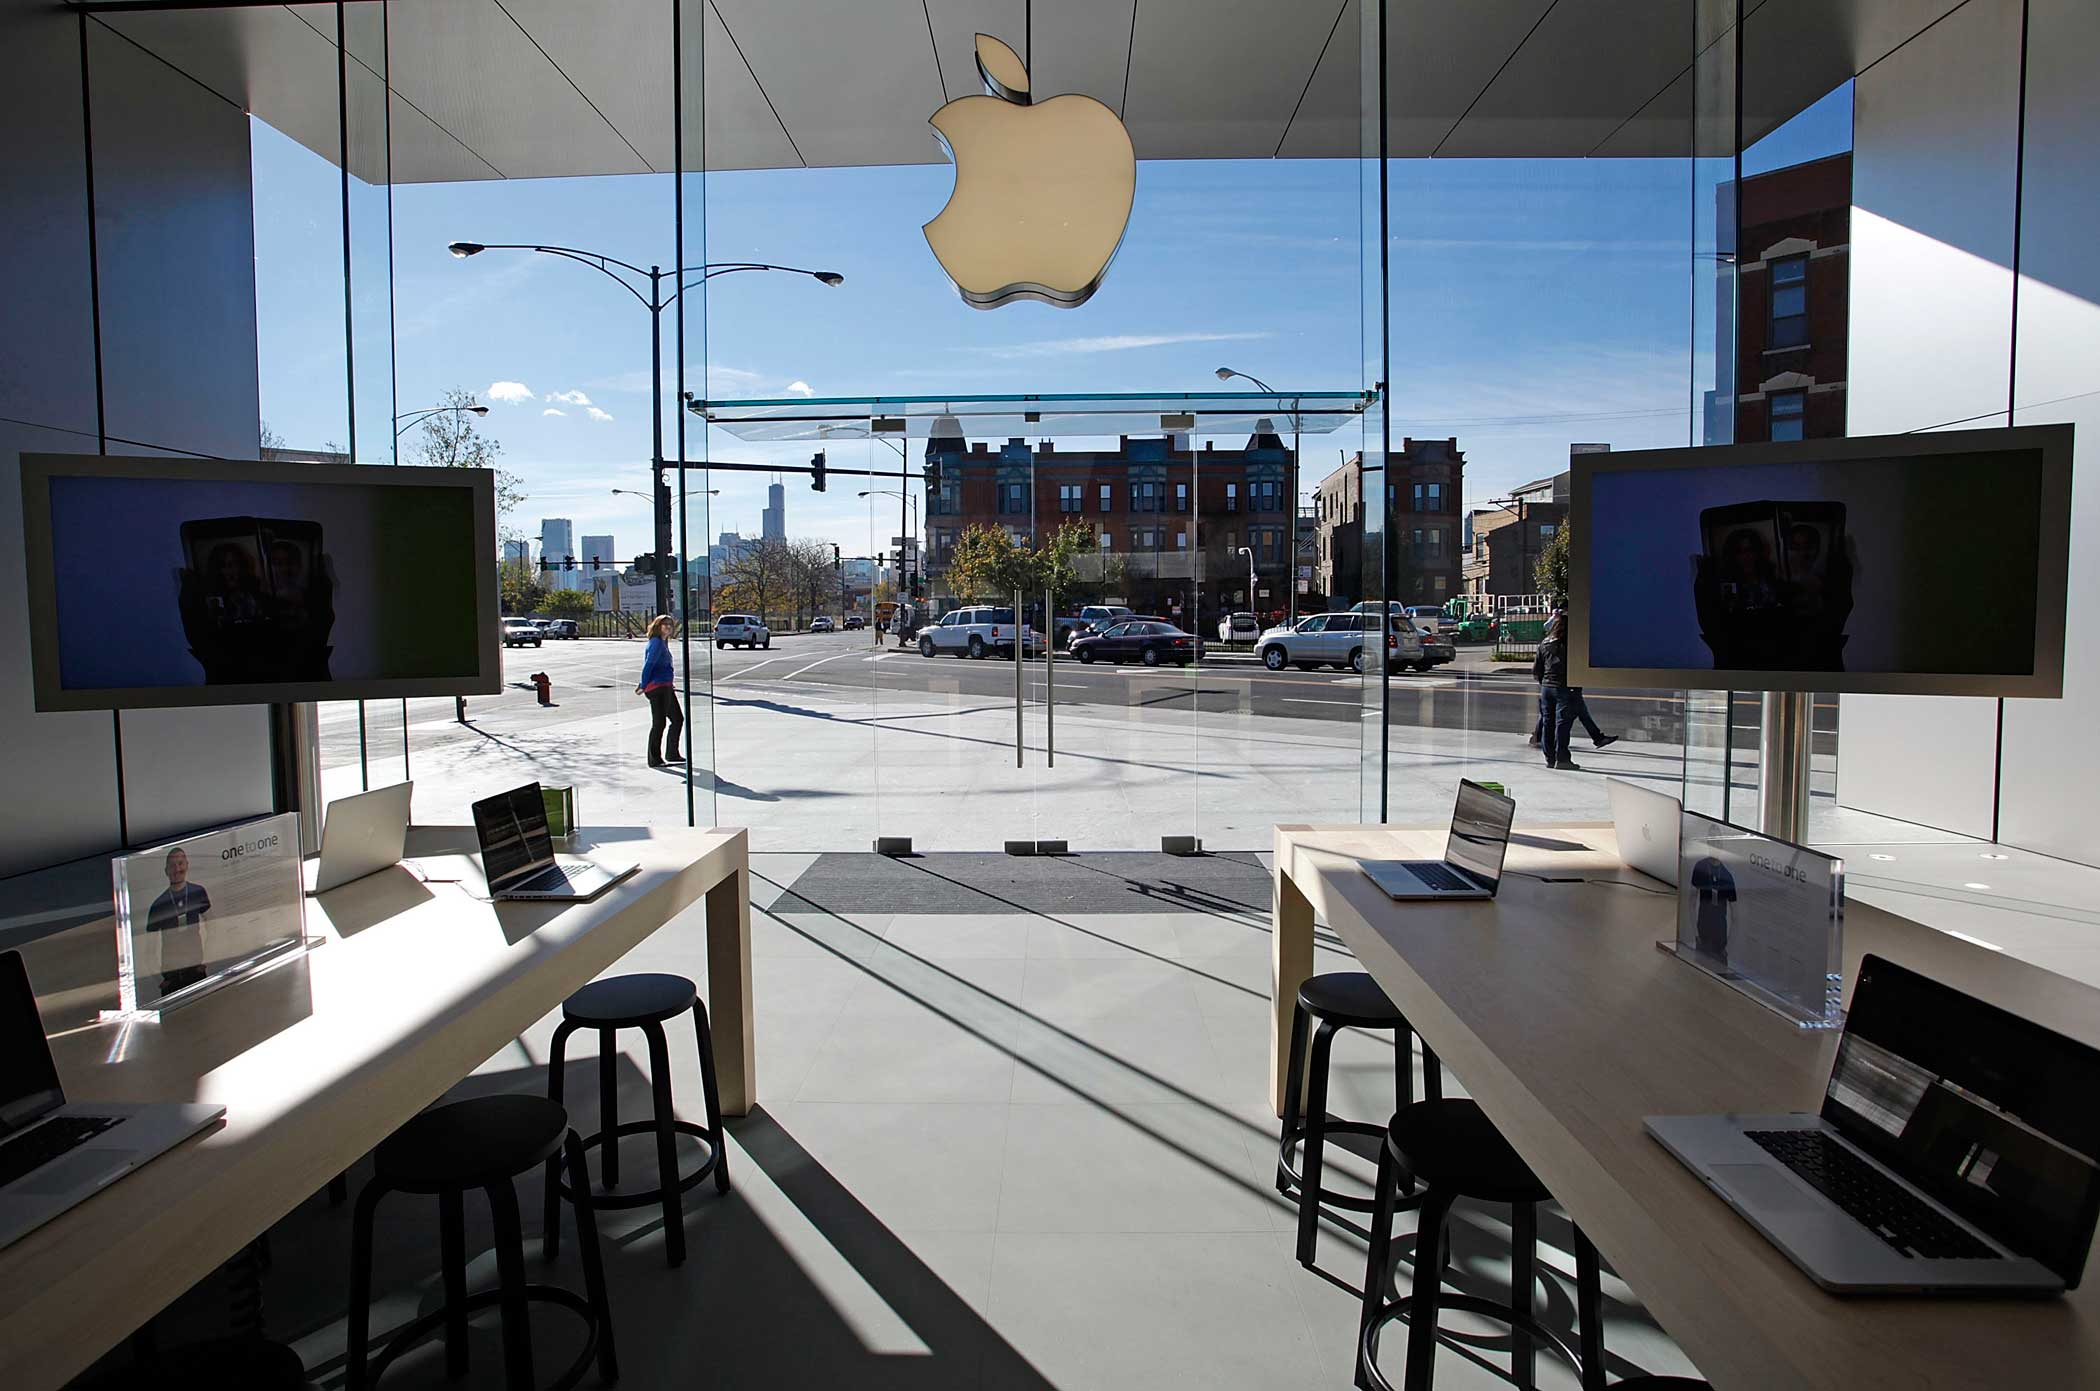 <b>Apple Store</b> The Chicago Apple Store.